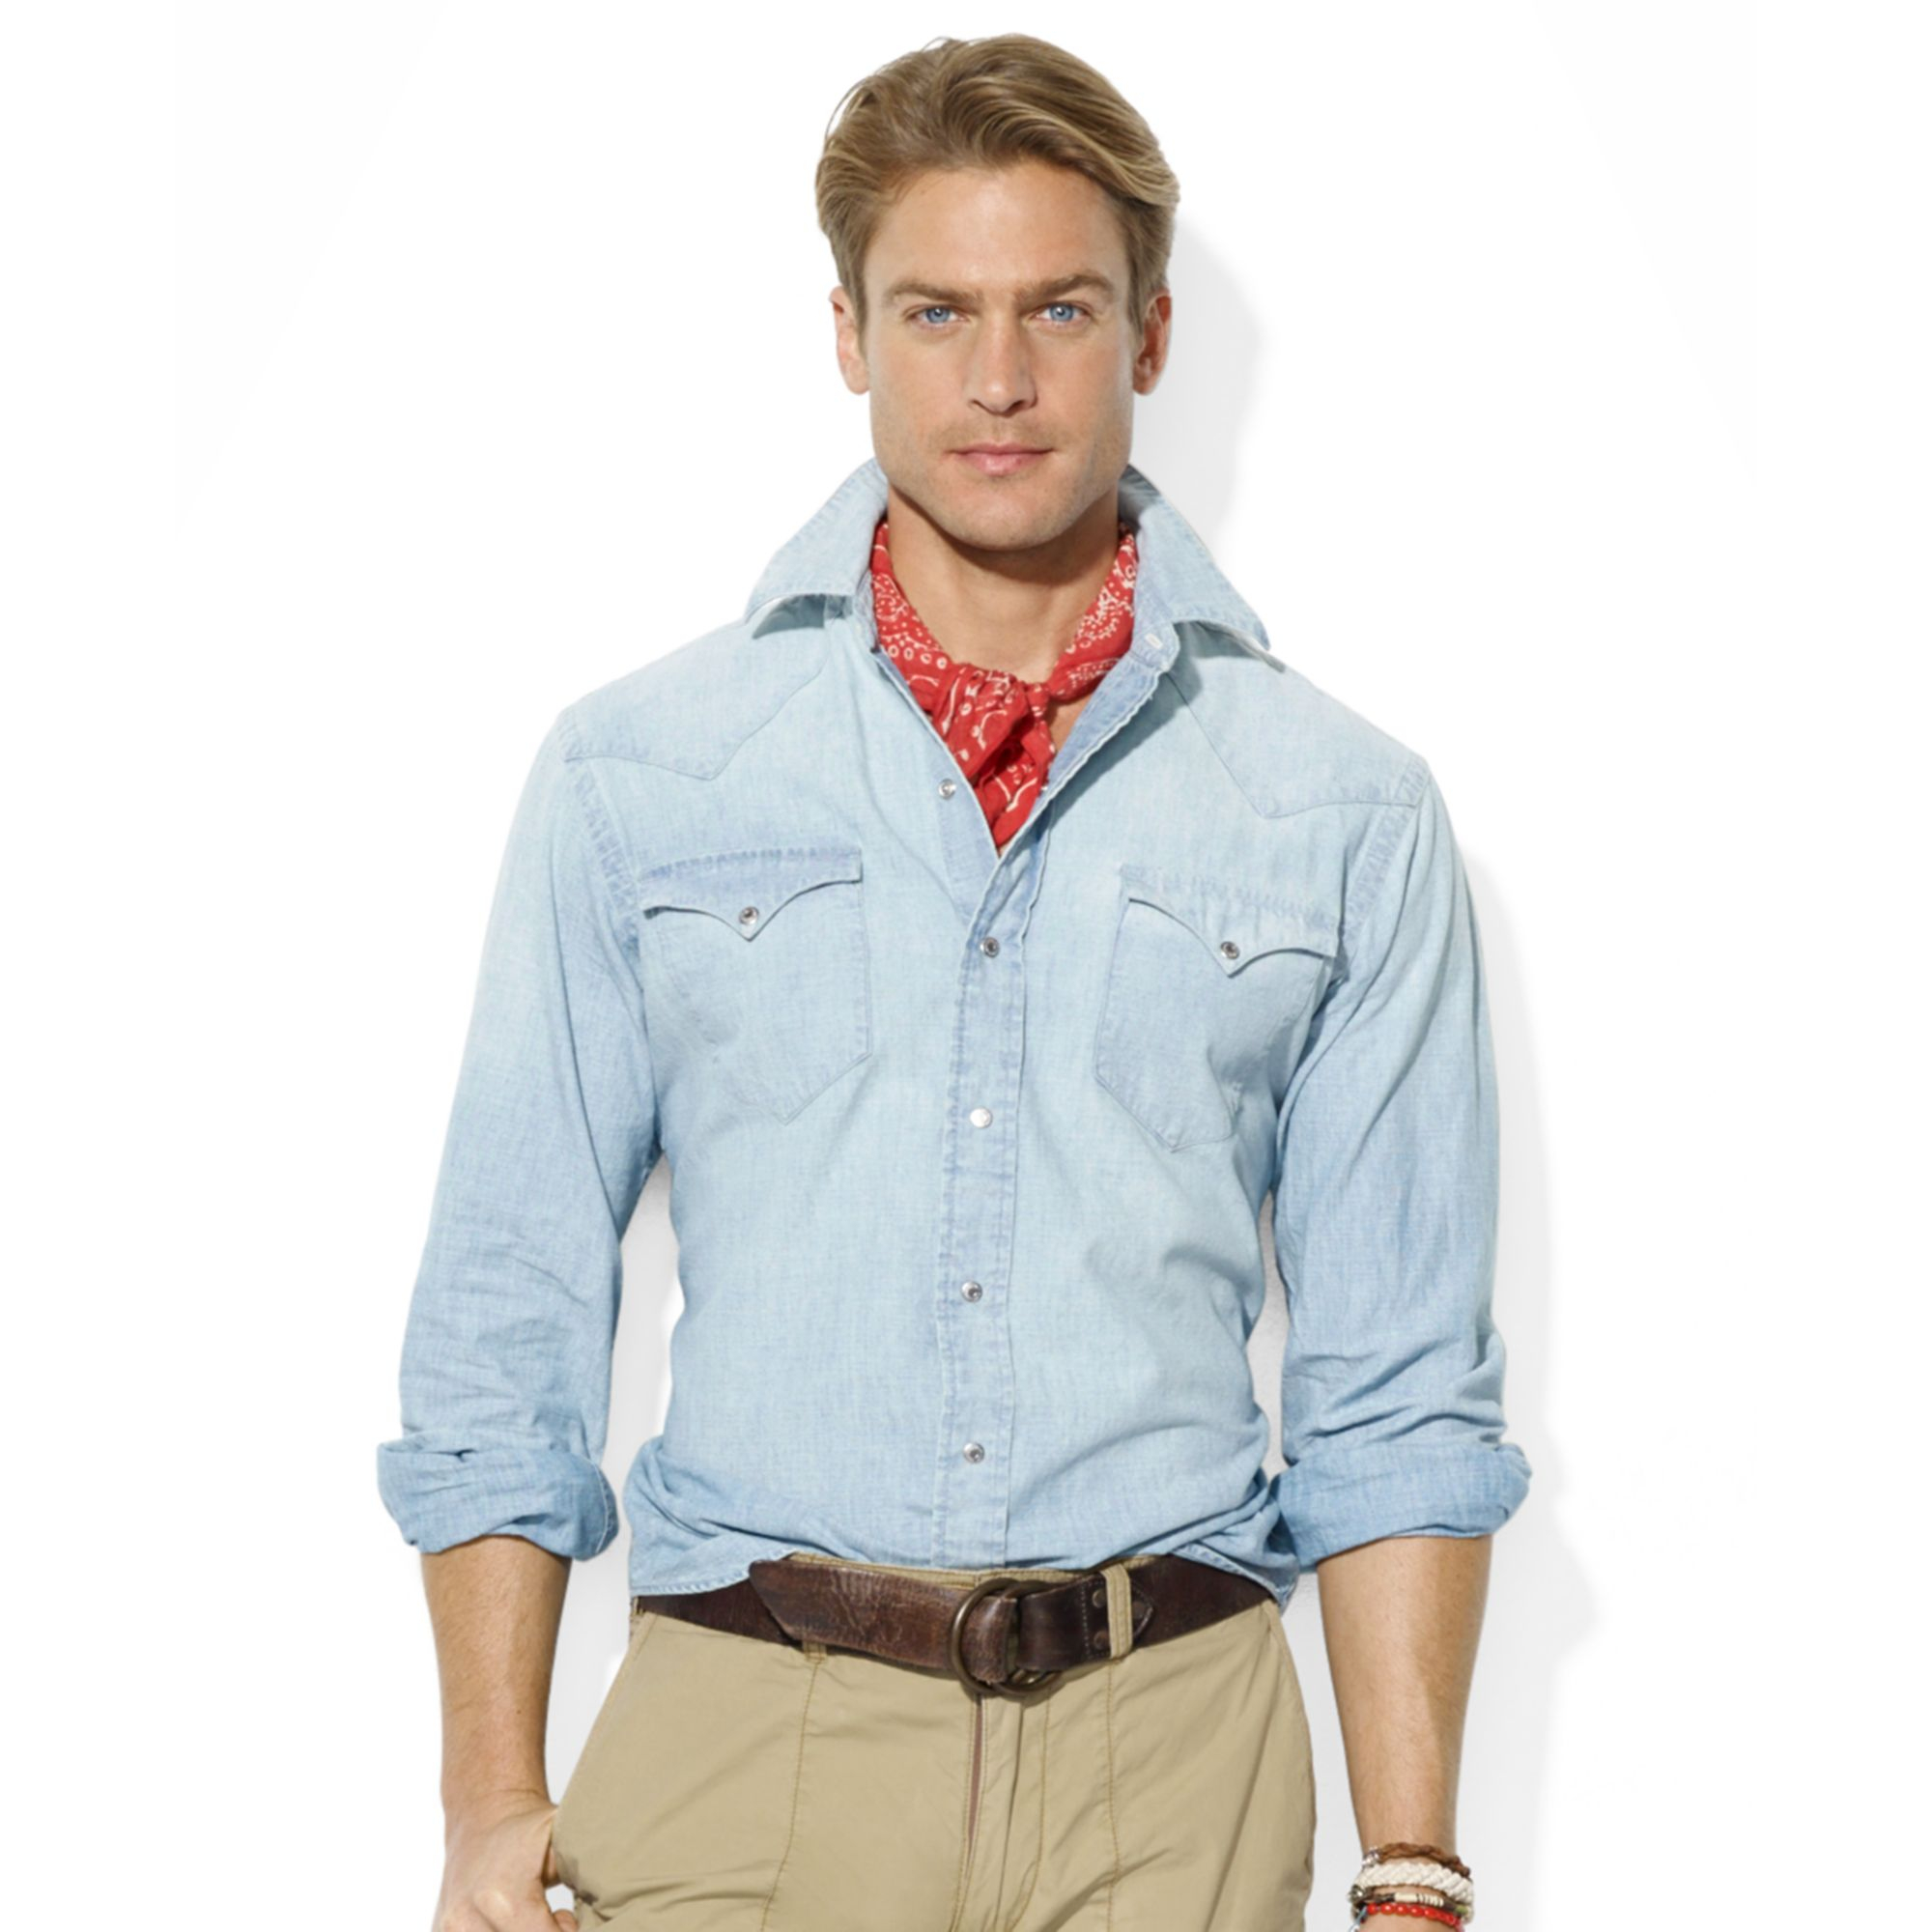 ralph lauren polo wild west chambray shirt in blue for men. Black Bedroom Furniture Sets. Home Design Ideas